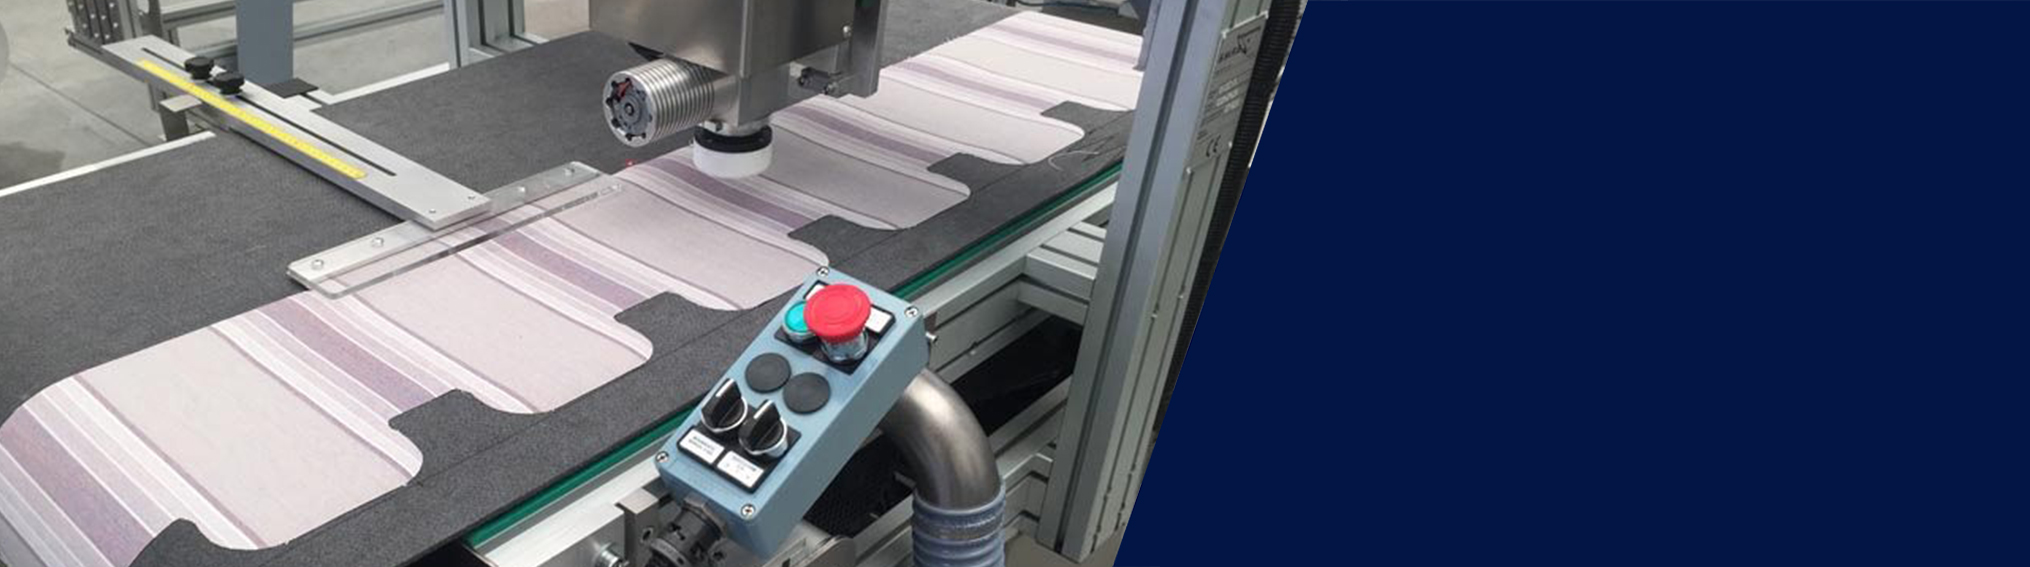 Machines for Sun Protection – Cutting machines - SM-355-TA Awning Valance Cutting Machines – Header Banner